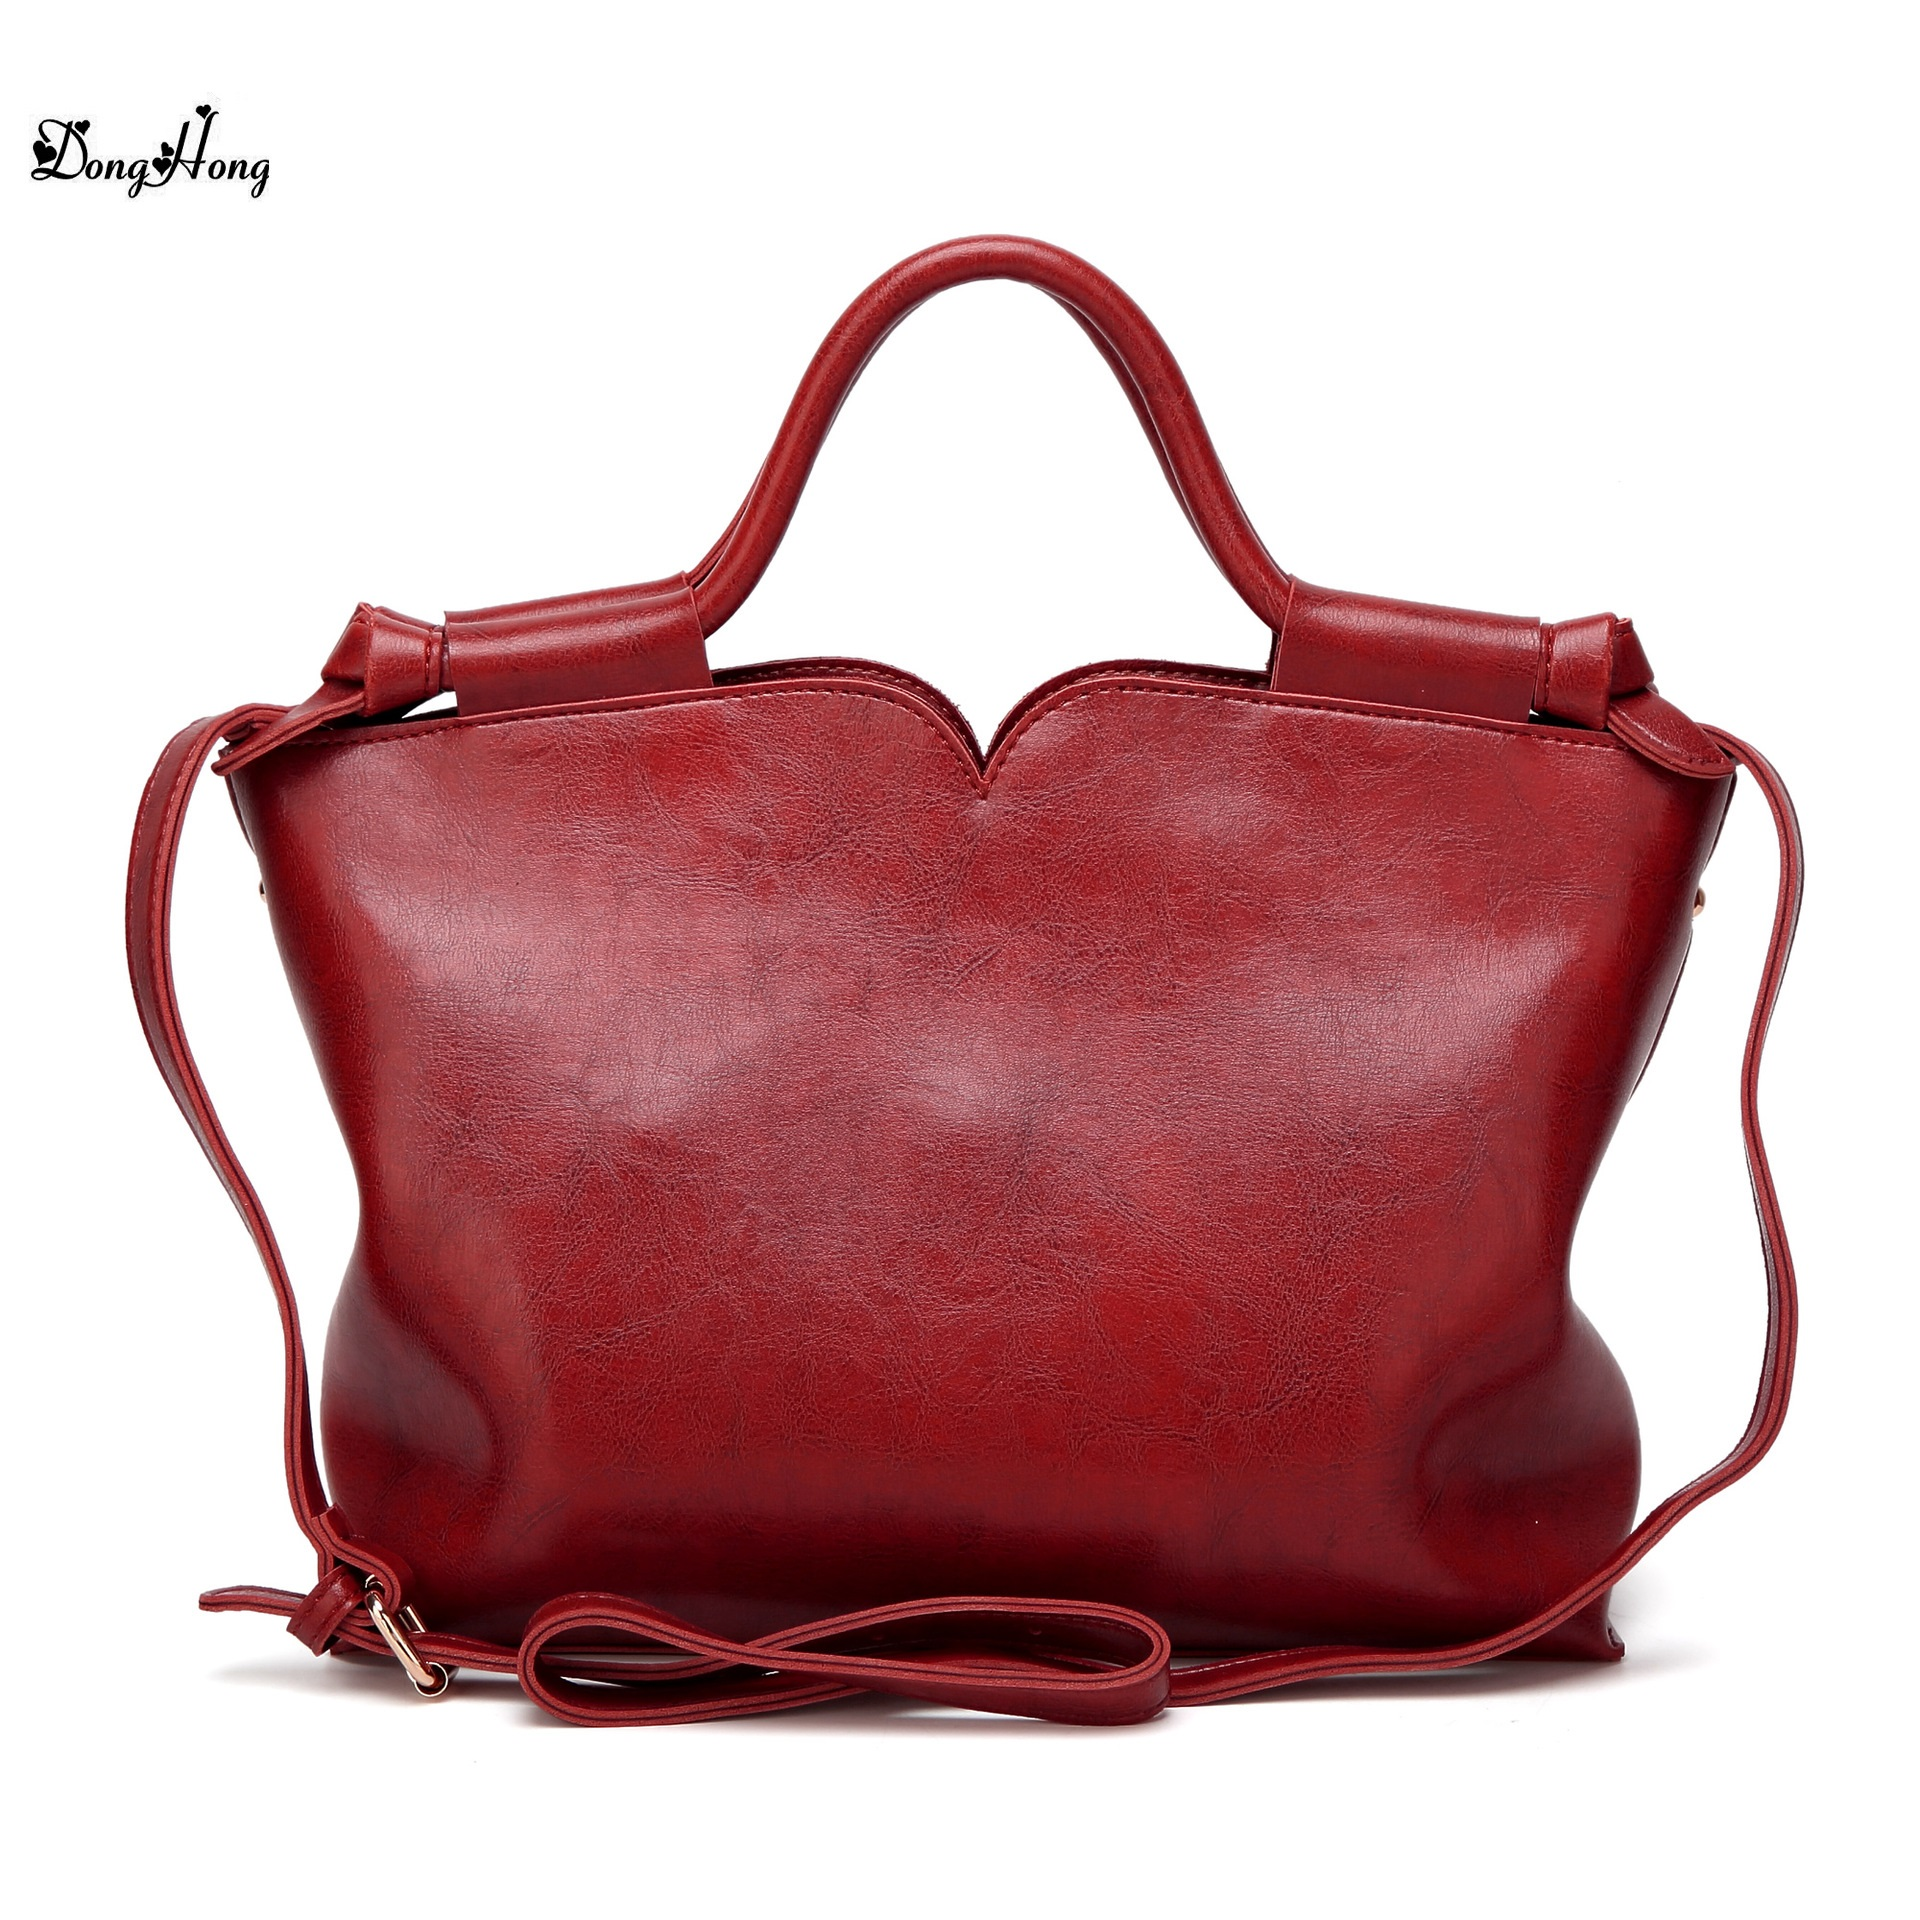 Real Cow Leather Ladies HandBags Women Genuine Leather bags Totes Messenger Bags Hign Quality Designer Luxury Brand Bag donghong real cow leather ladies hand bags women genuine leather handbag shoulder bag hign quality designer luxury brand bag